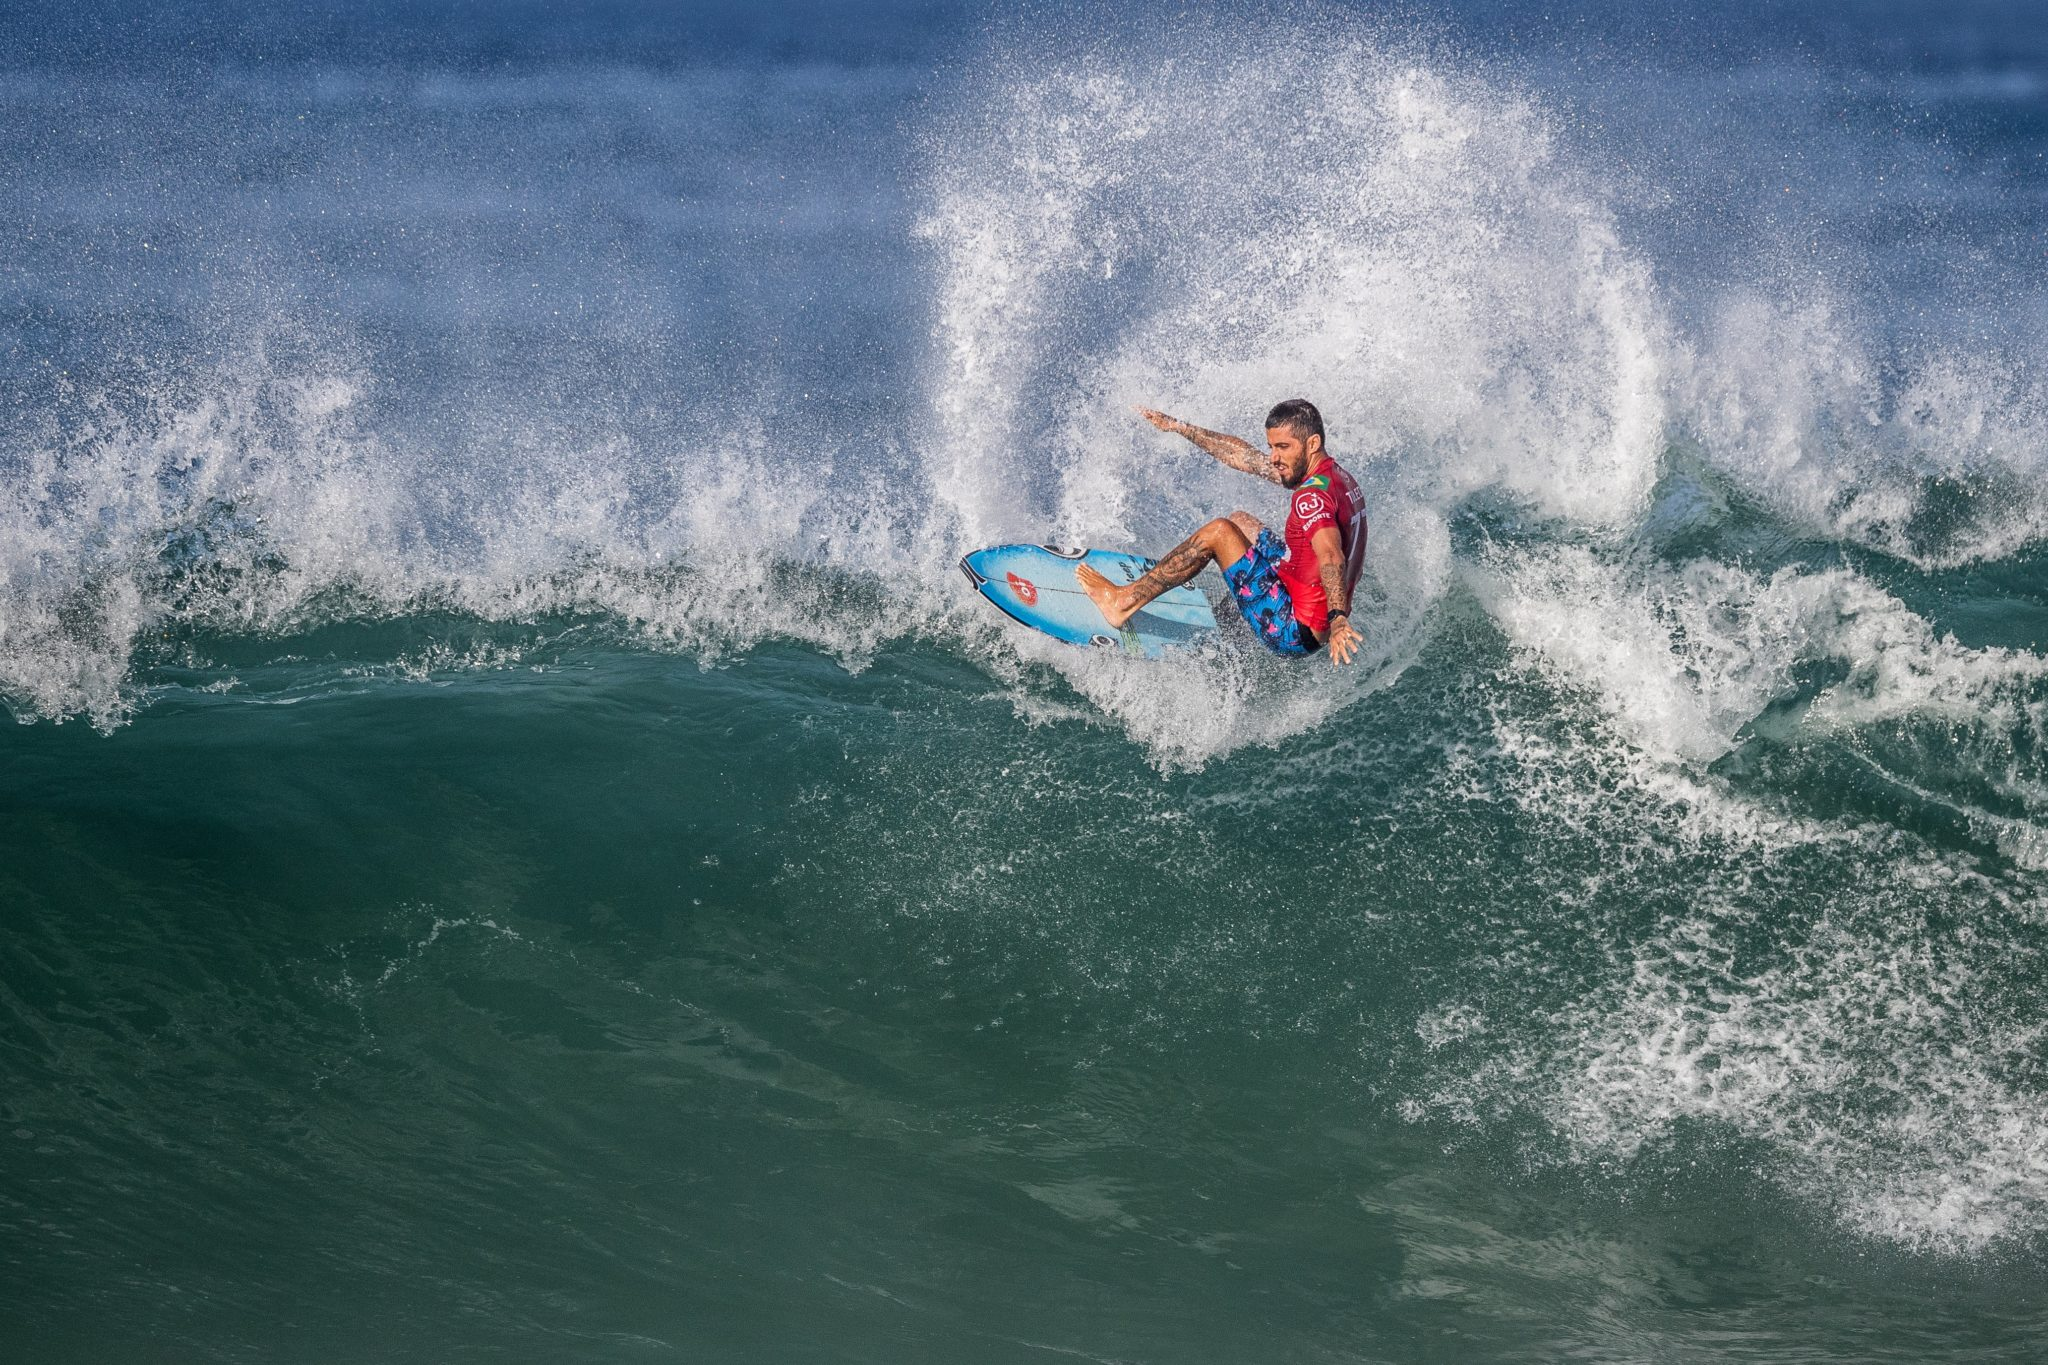 Filipe Toledo (SP) (Thiago Diz / WSL via Getty Images)